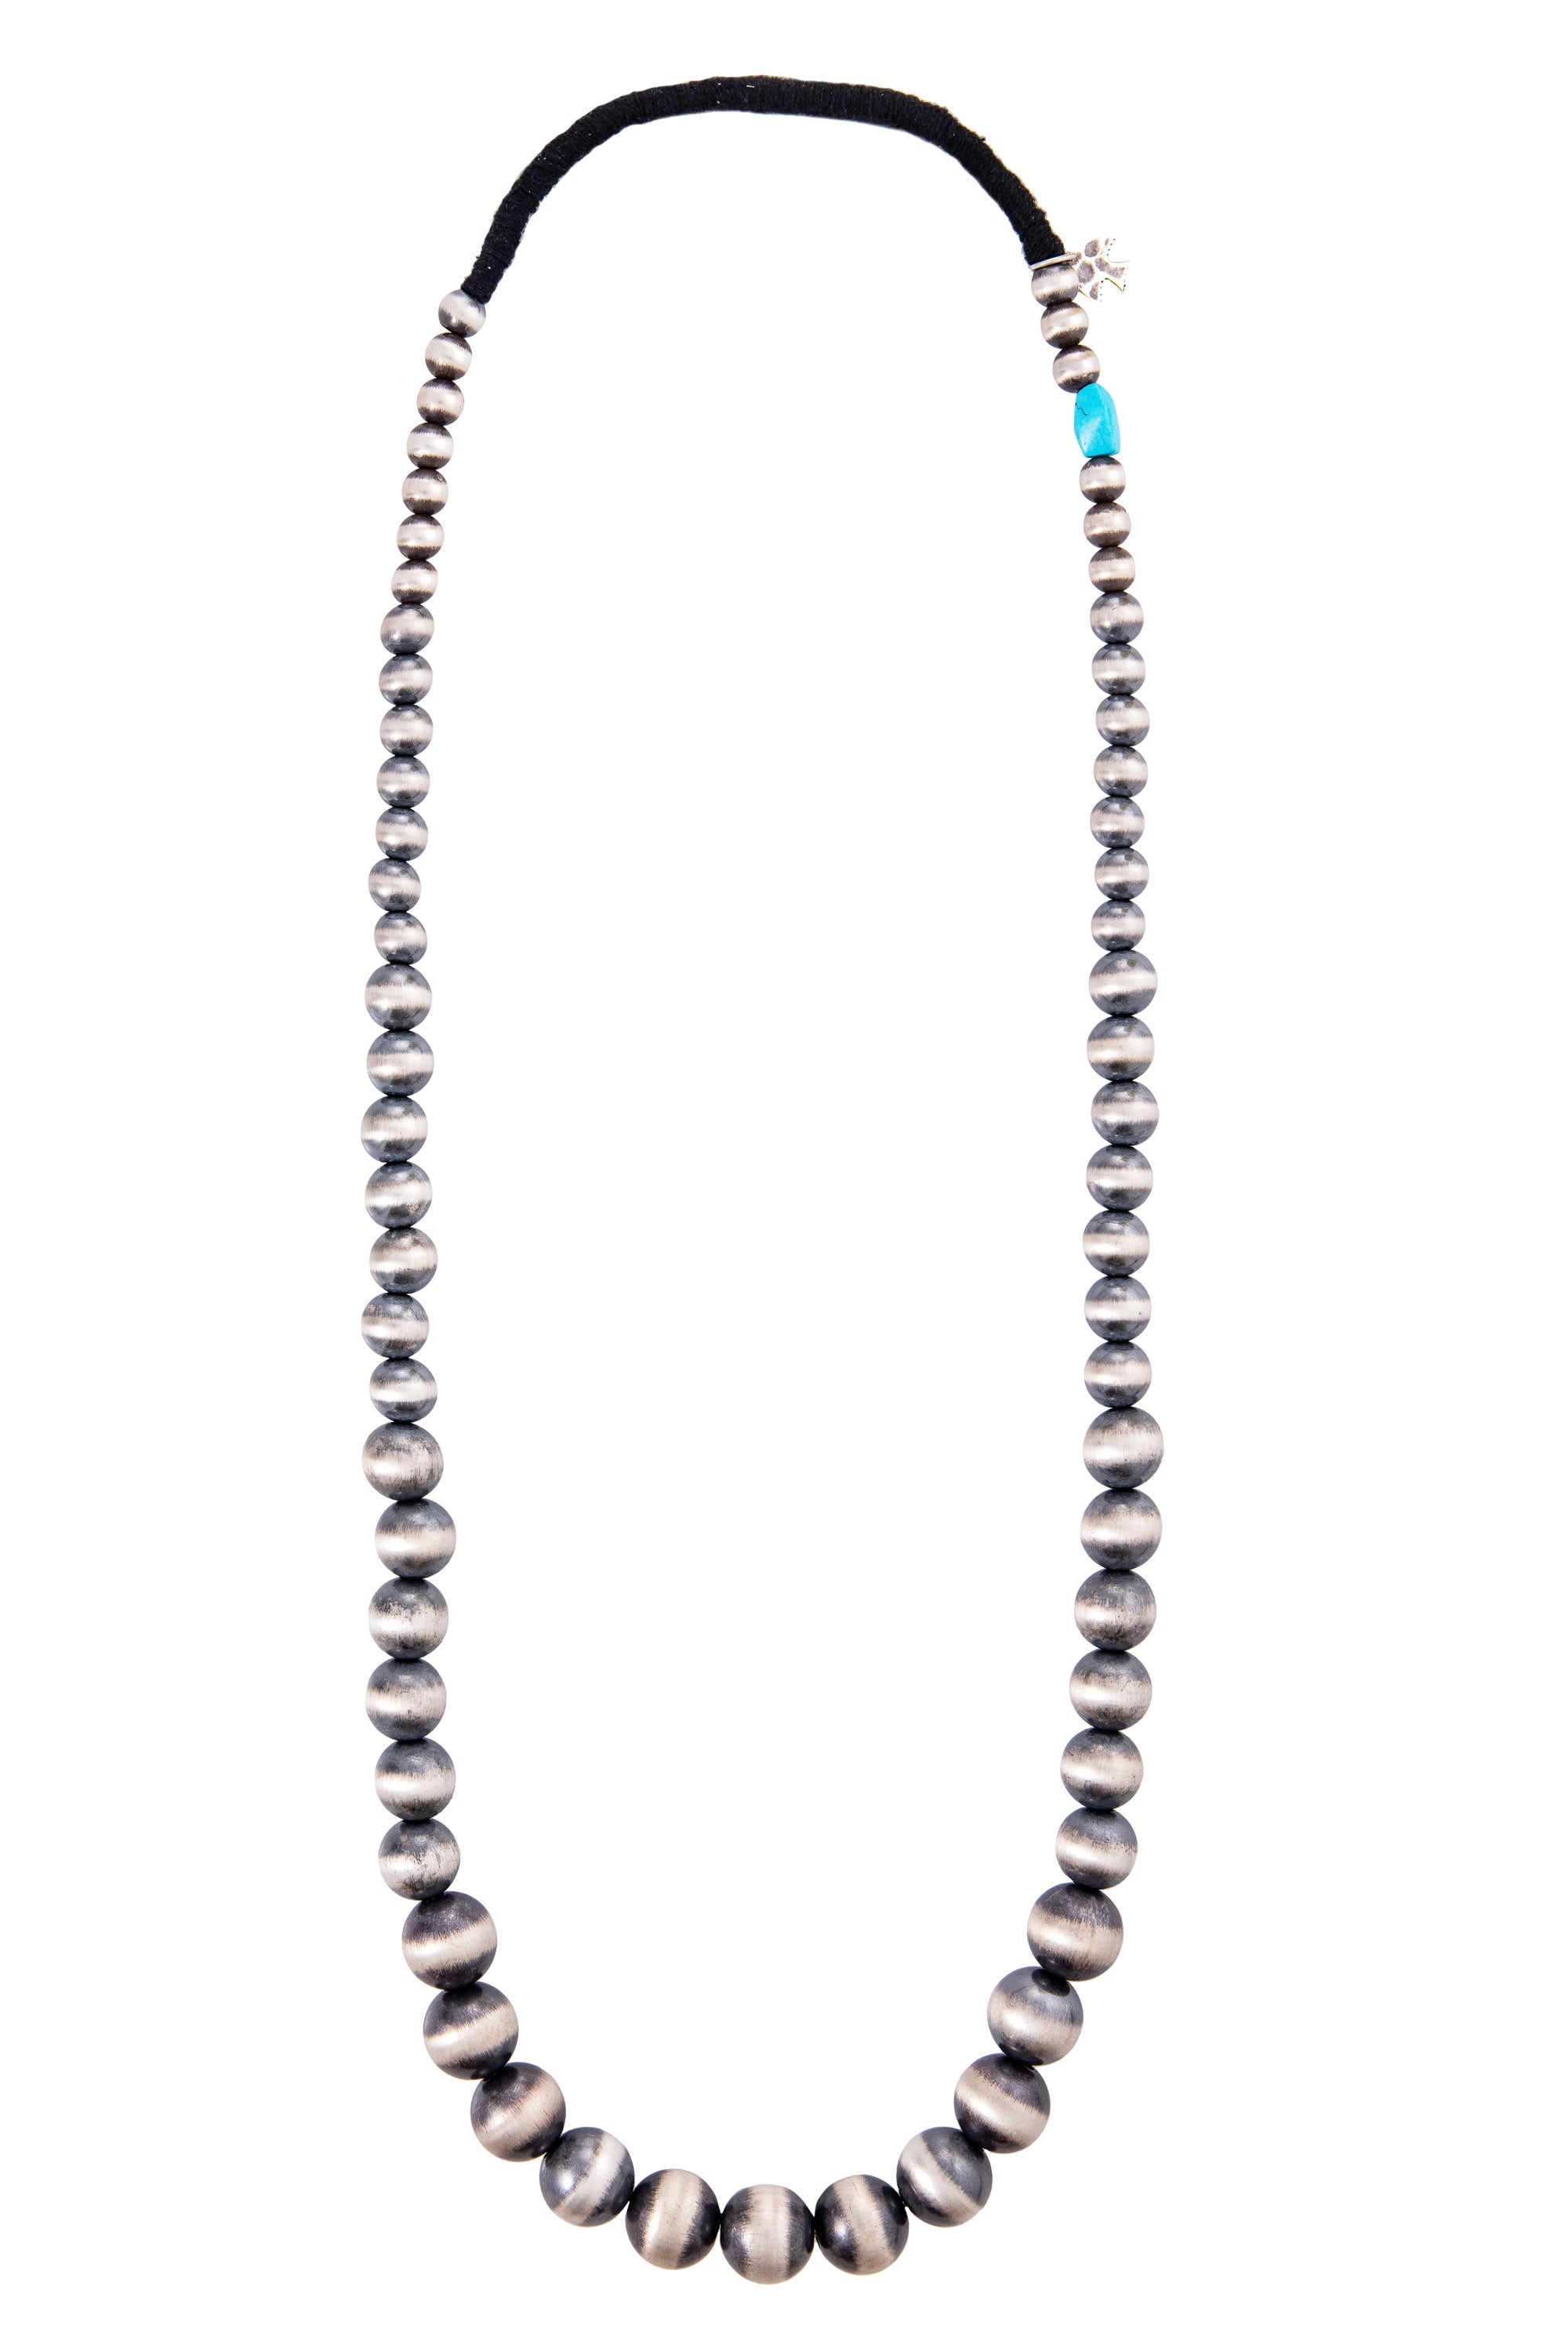 "Necklace, Bead, Desert Pearls, 26"", Pilar Lovato, 1133"